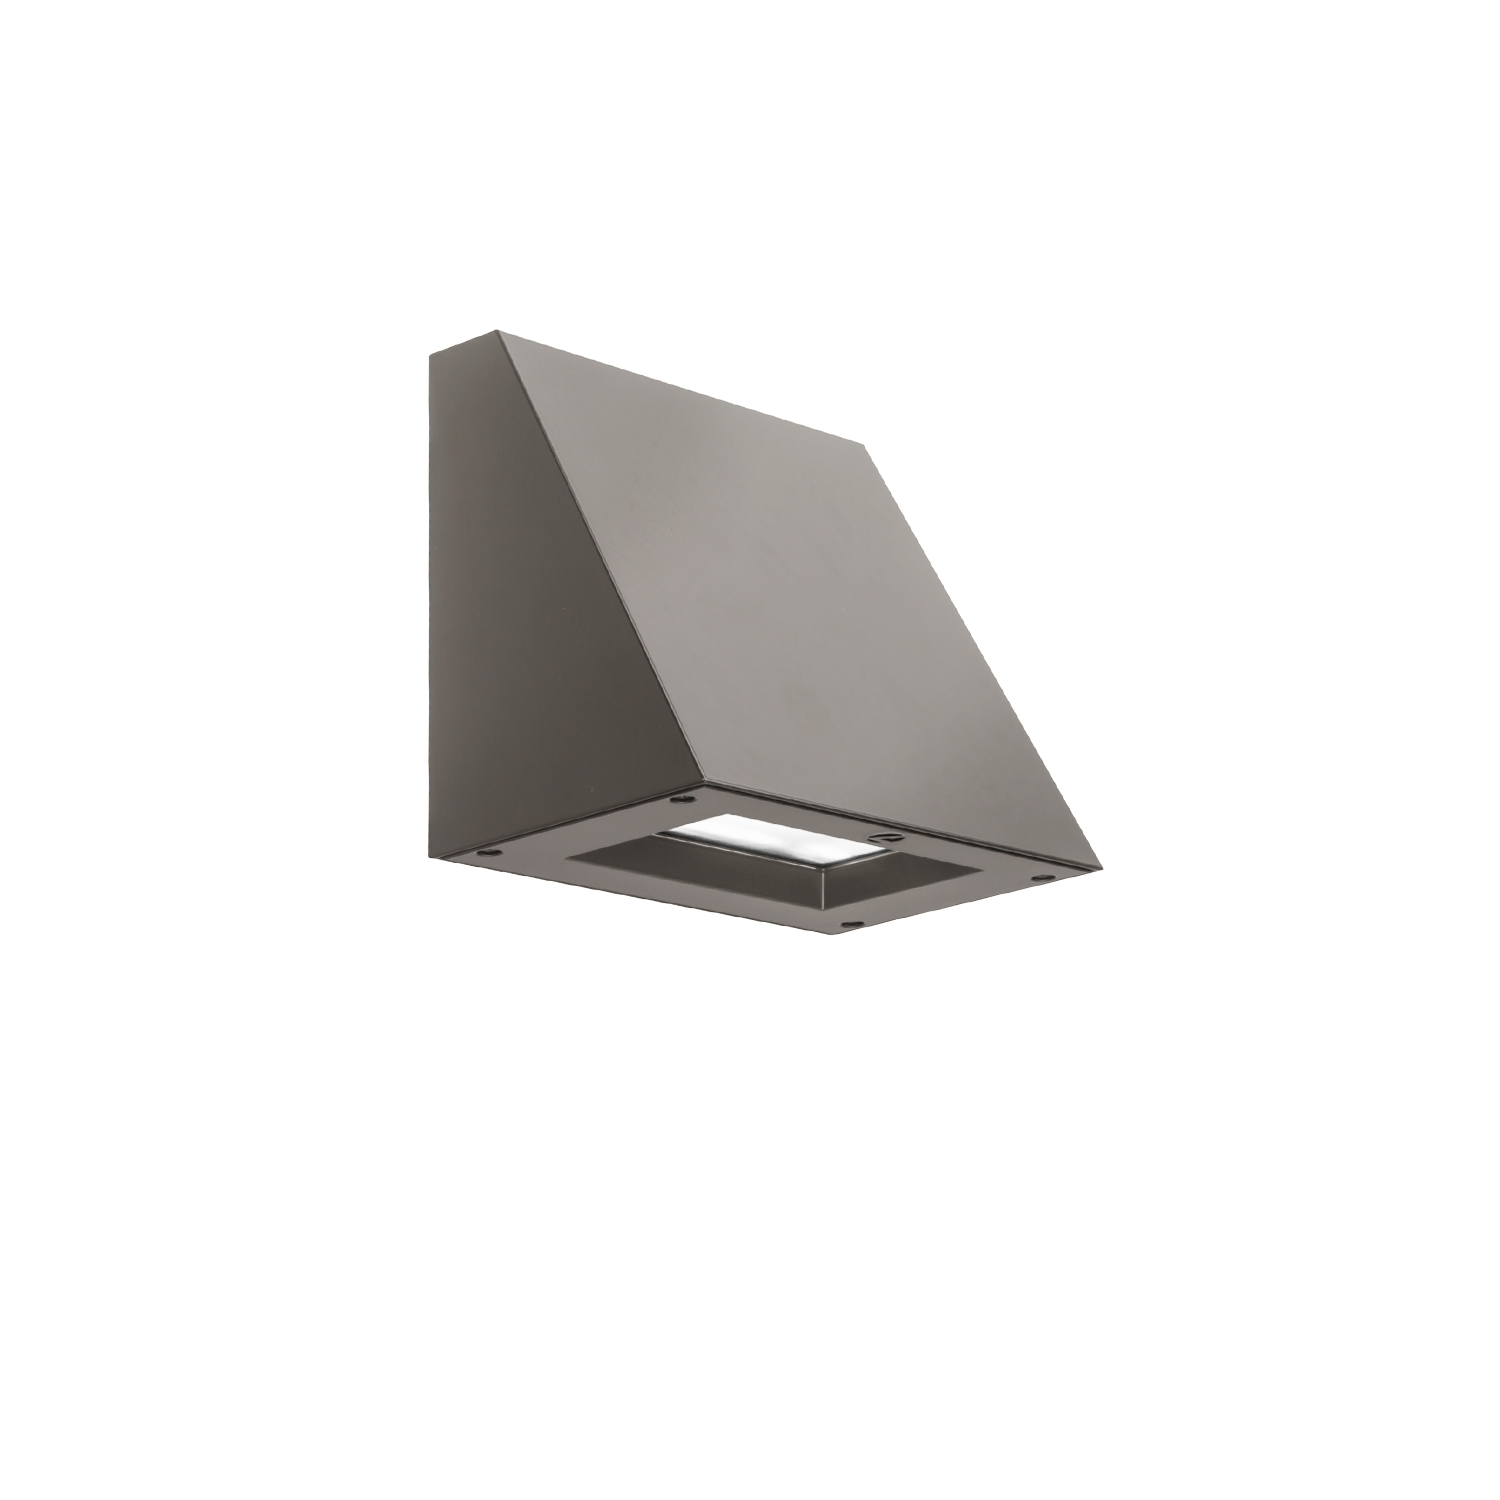 WDGE1 LED Wall Mount